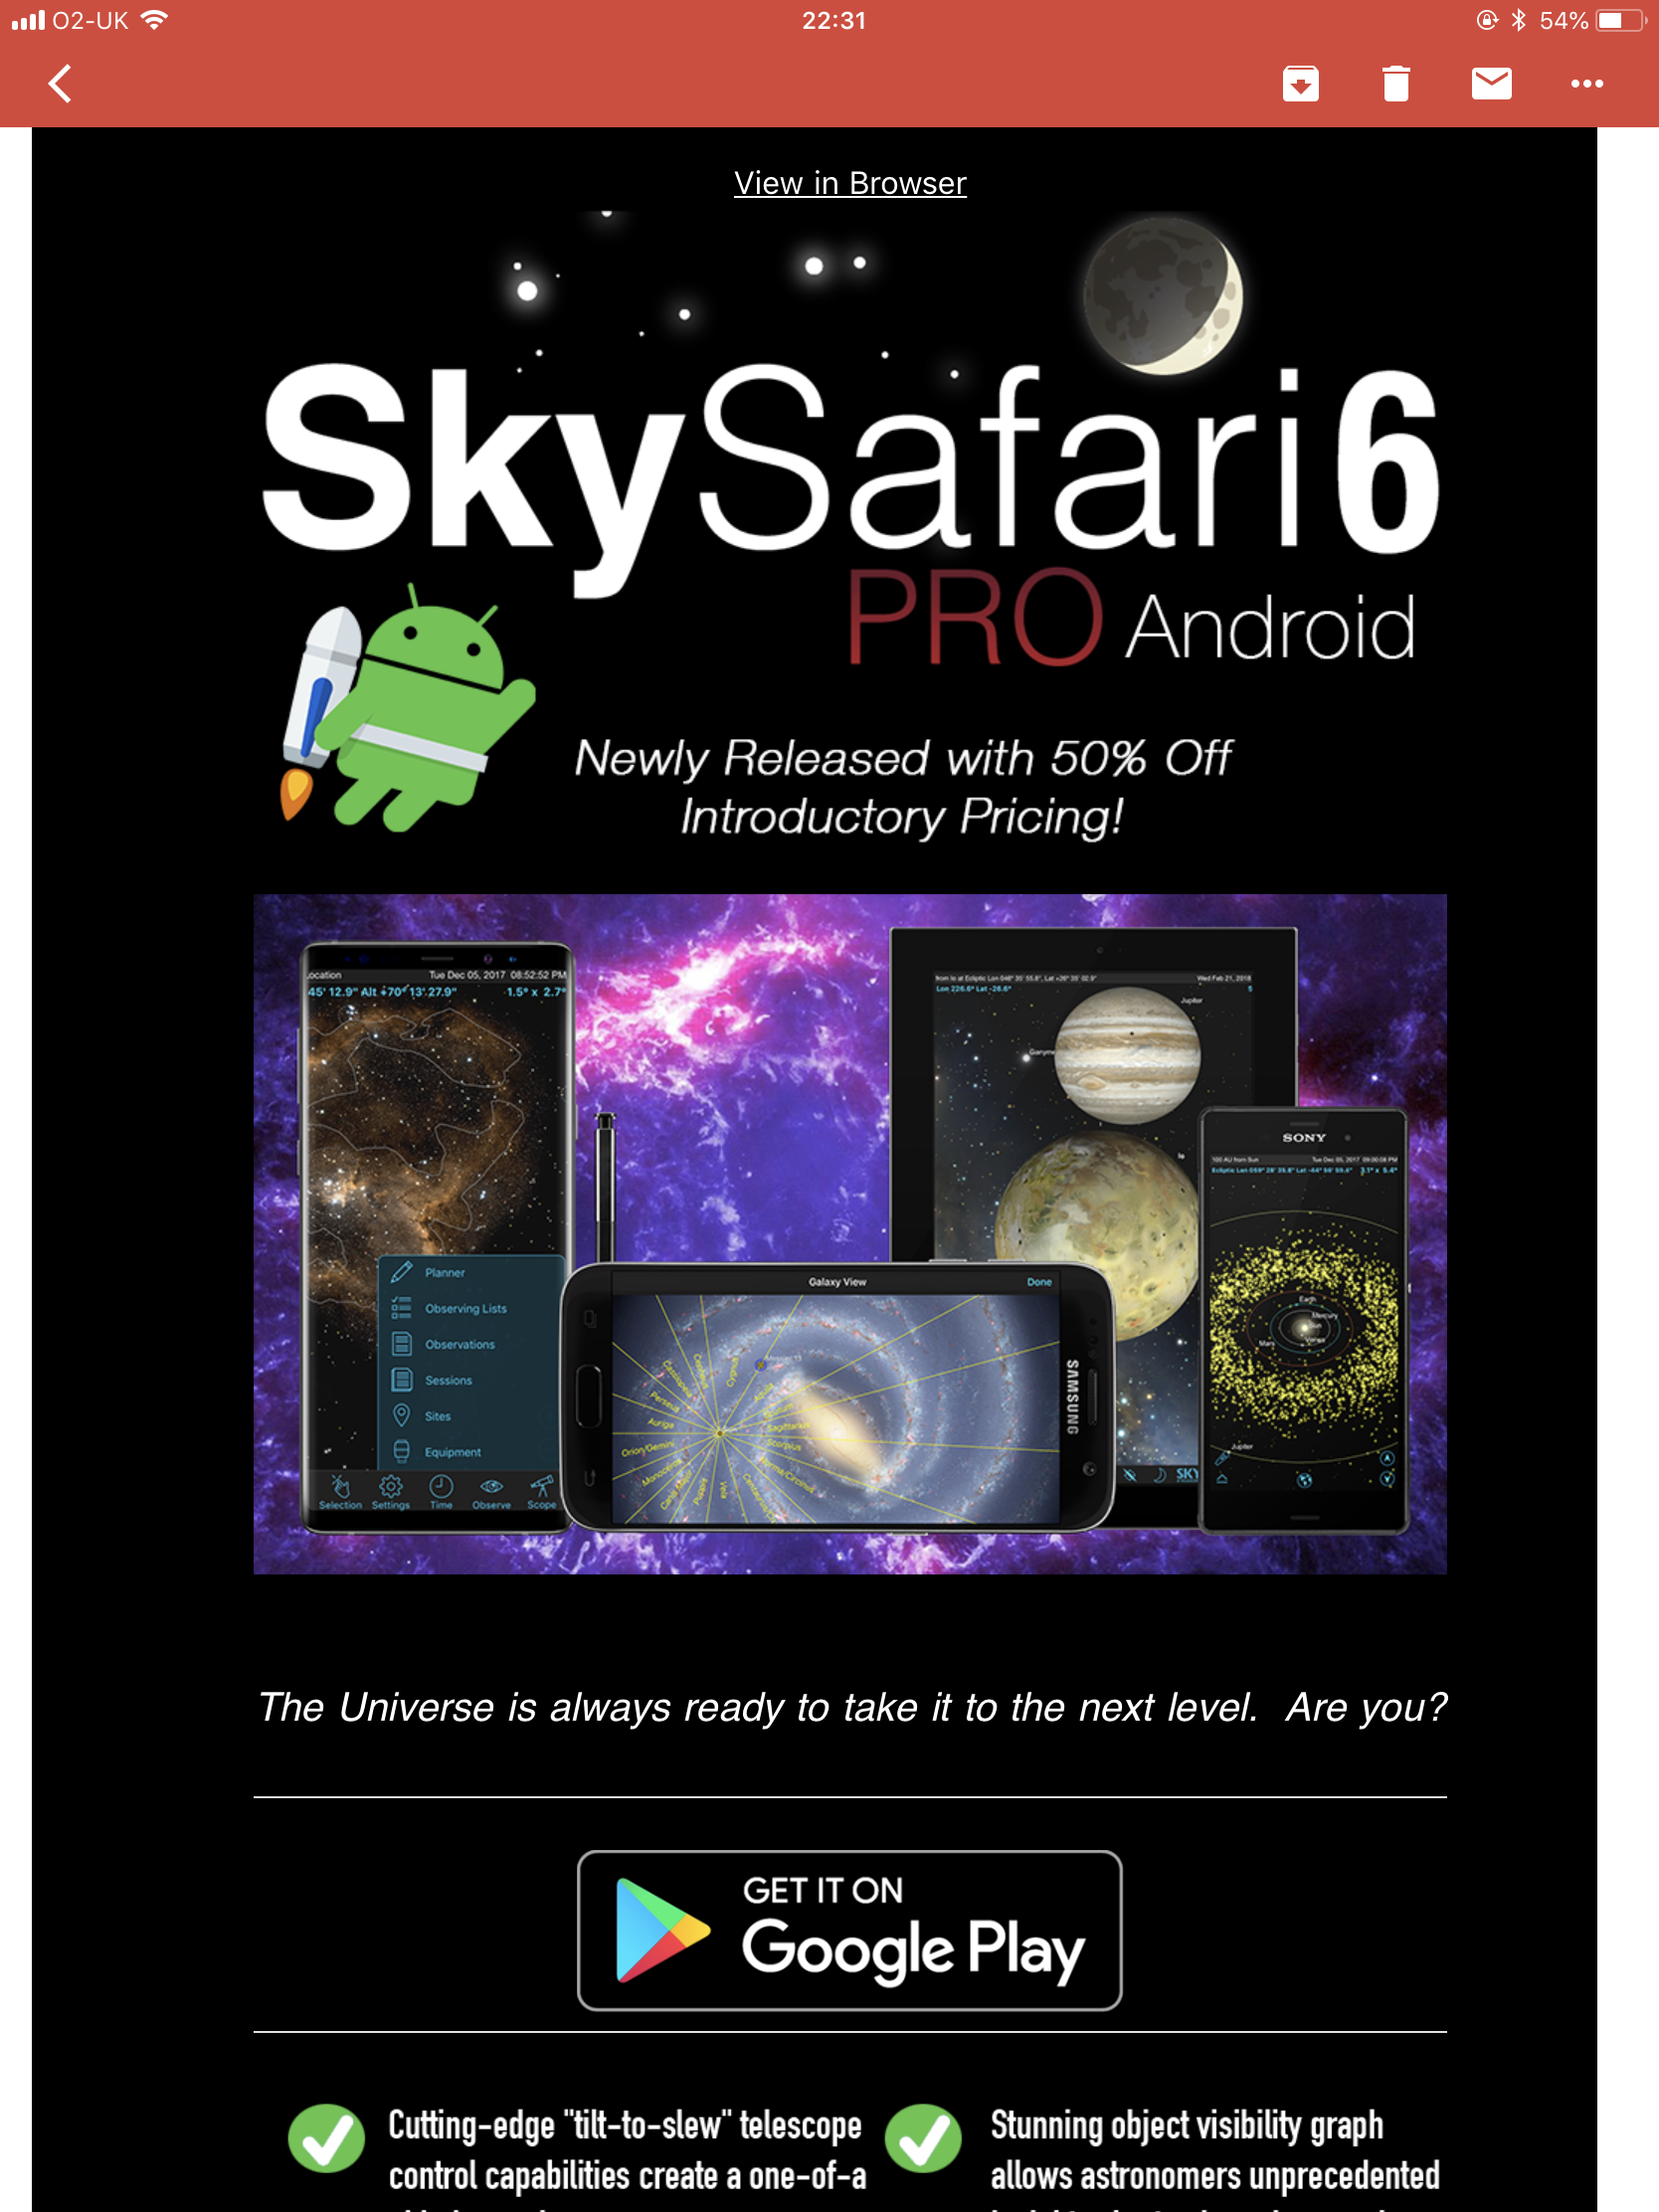 Skysafari 6 Pro Android version arrived 50% off